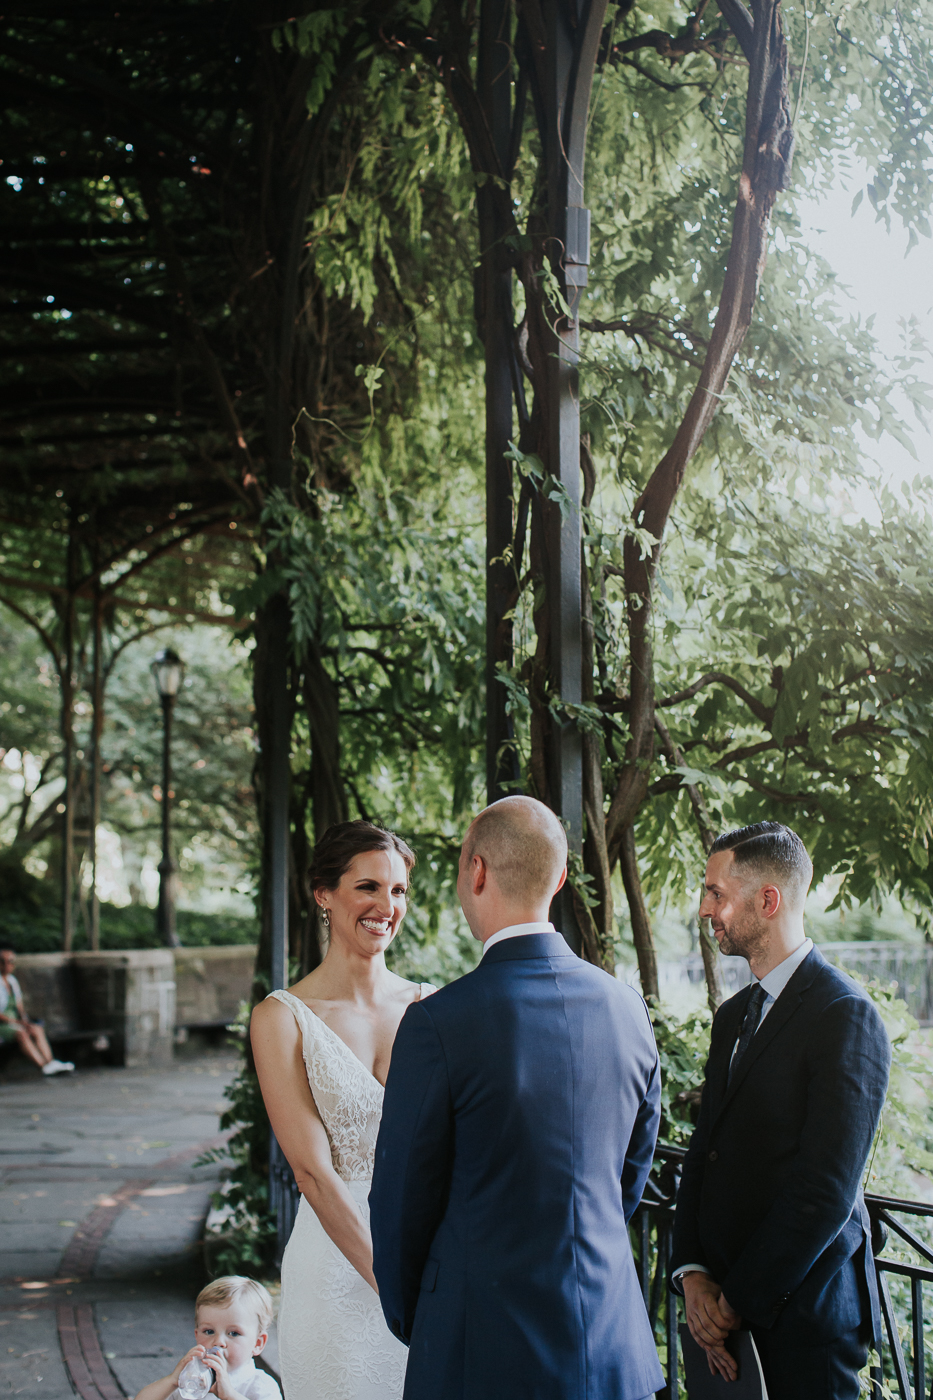 NYC-Central-Park-Conservatory-Garden-Intimate-Elopement-Documentary-Wedding-Photographer-24.jpg